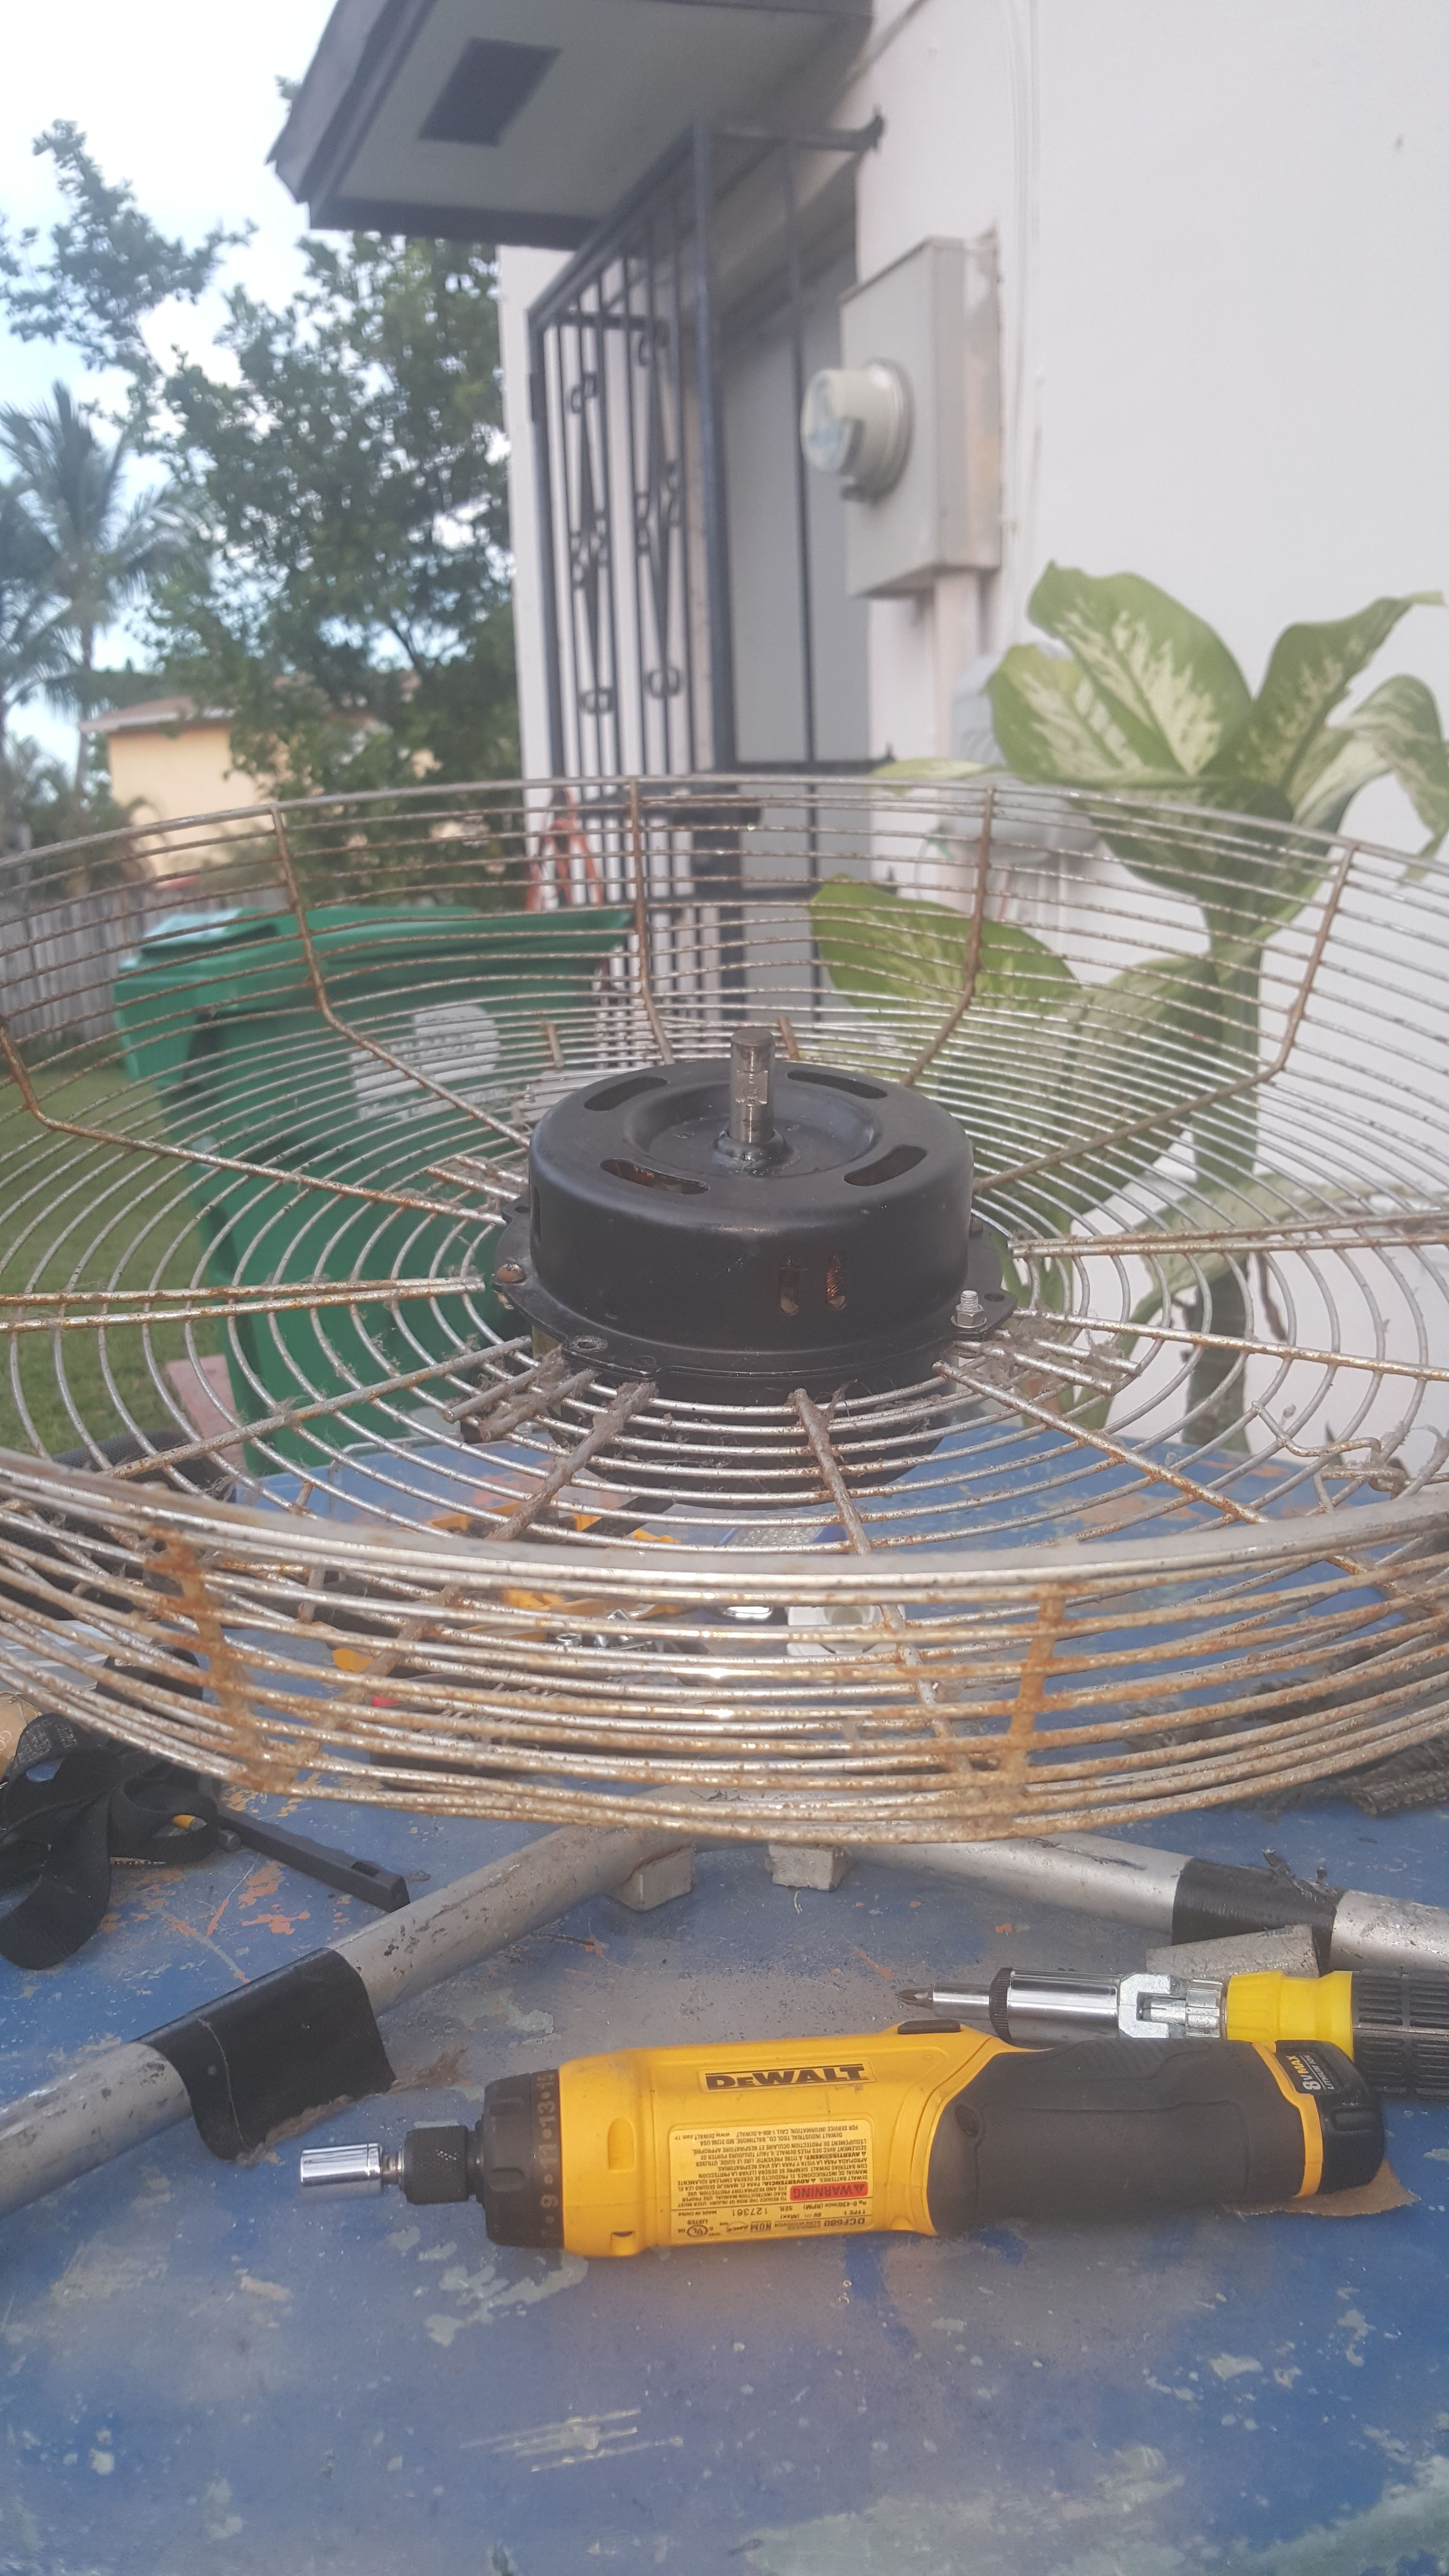 Picture of Let's the Tent the Motor and Fan Blades.